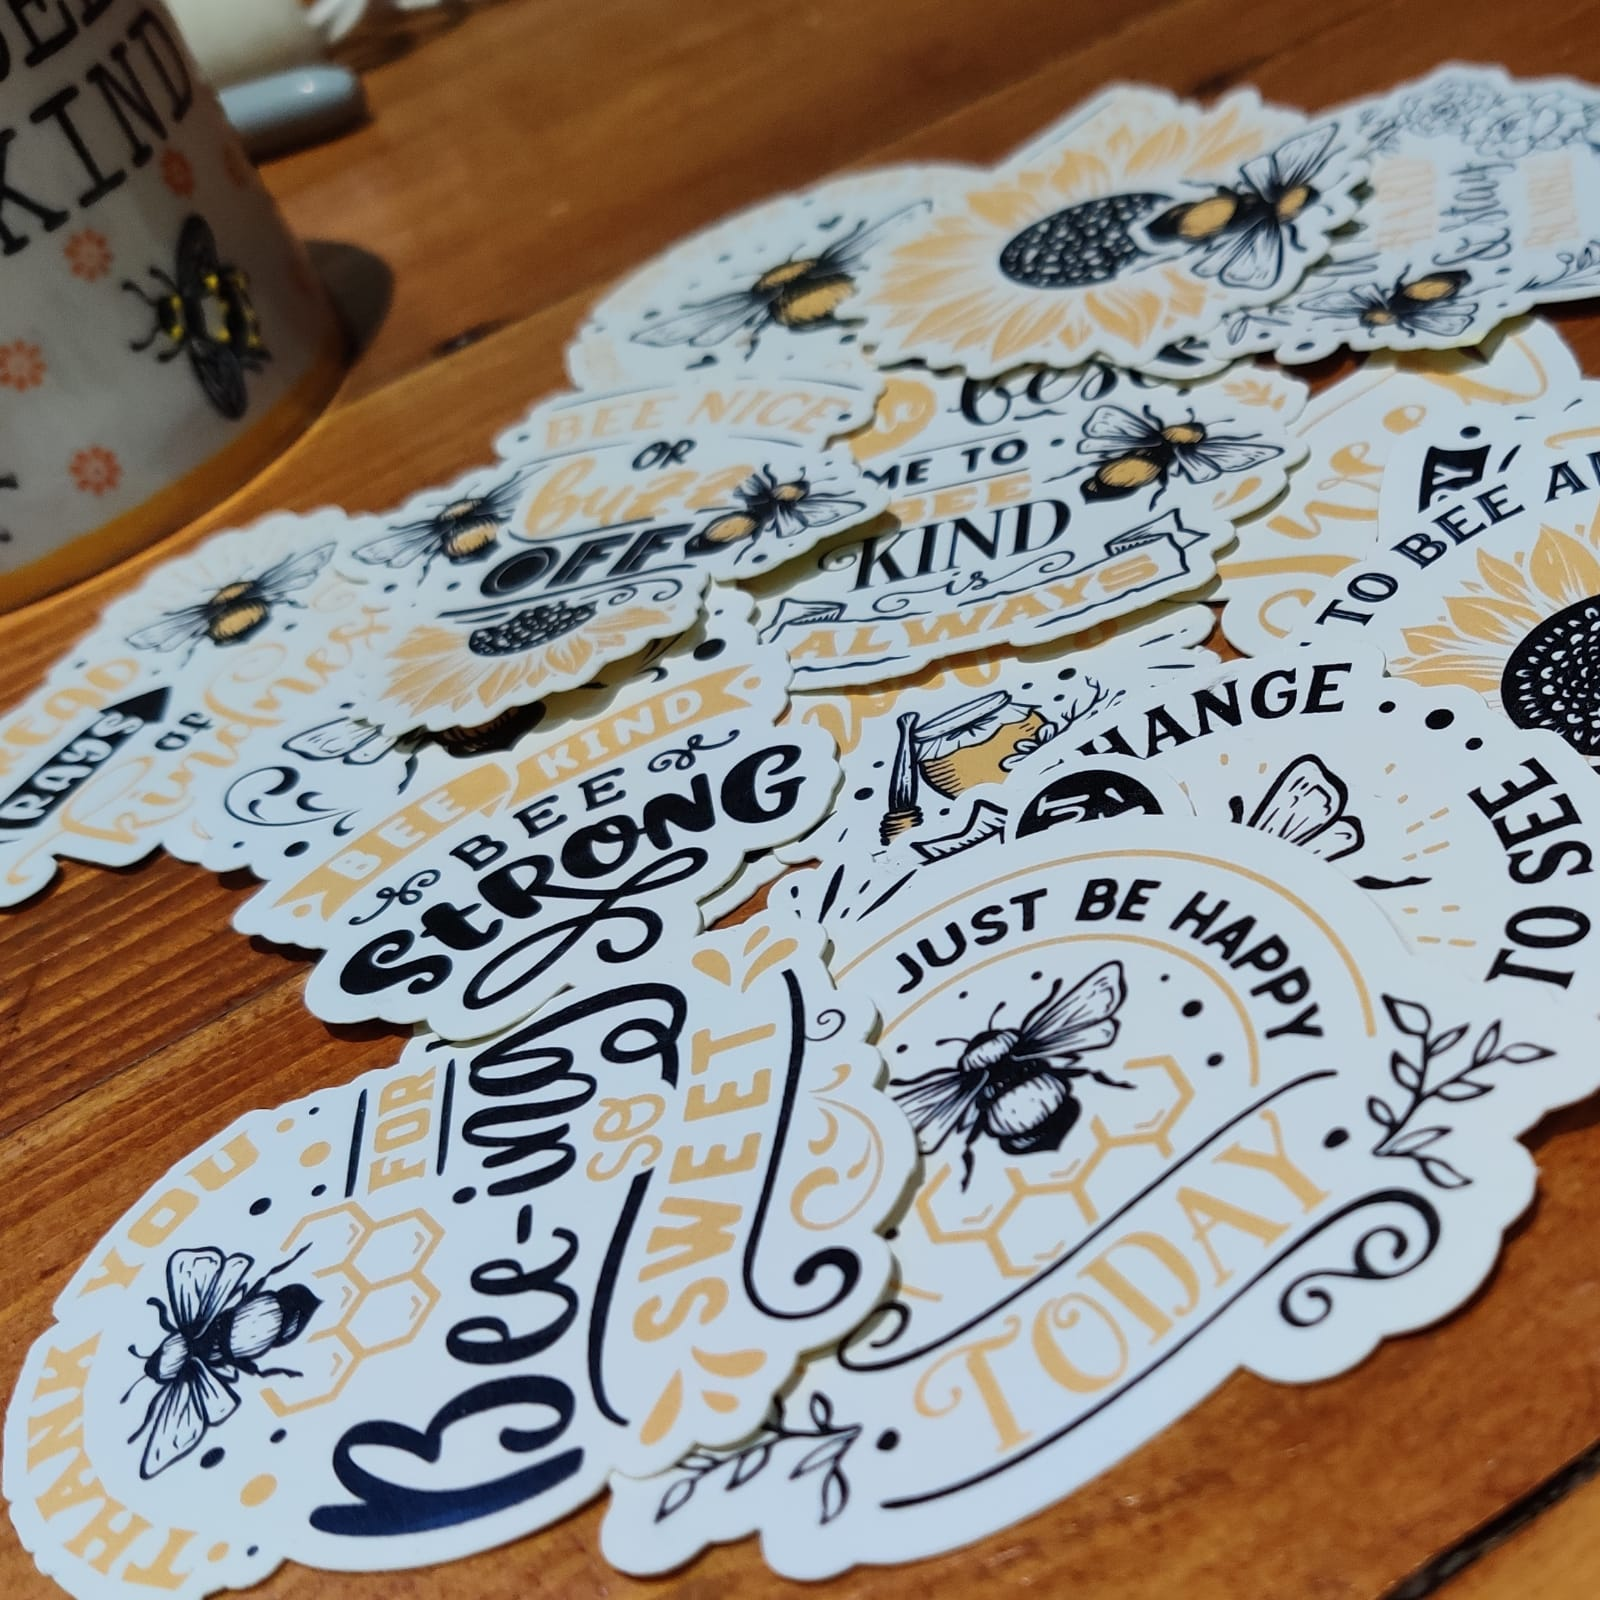 Positivity Bee Themed Stickers | Mental Health Support | Positive Reminder | Encouragement | Bumble Bee Sticker | Anxiety | Charity Donation Kind Shop